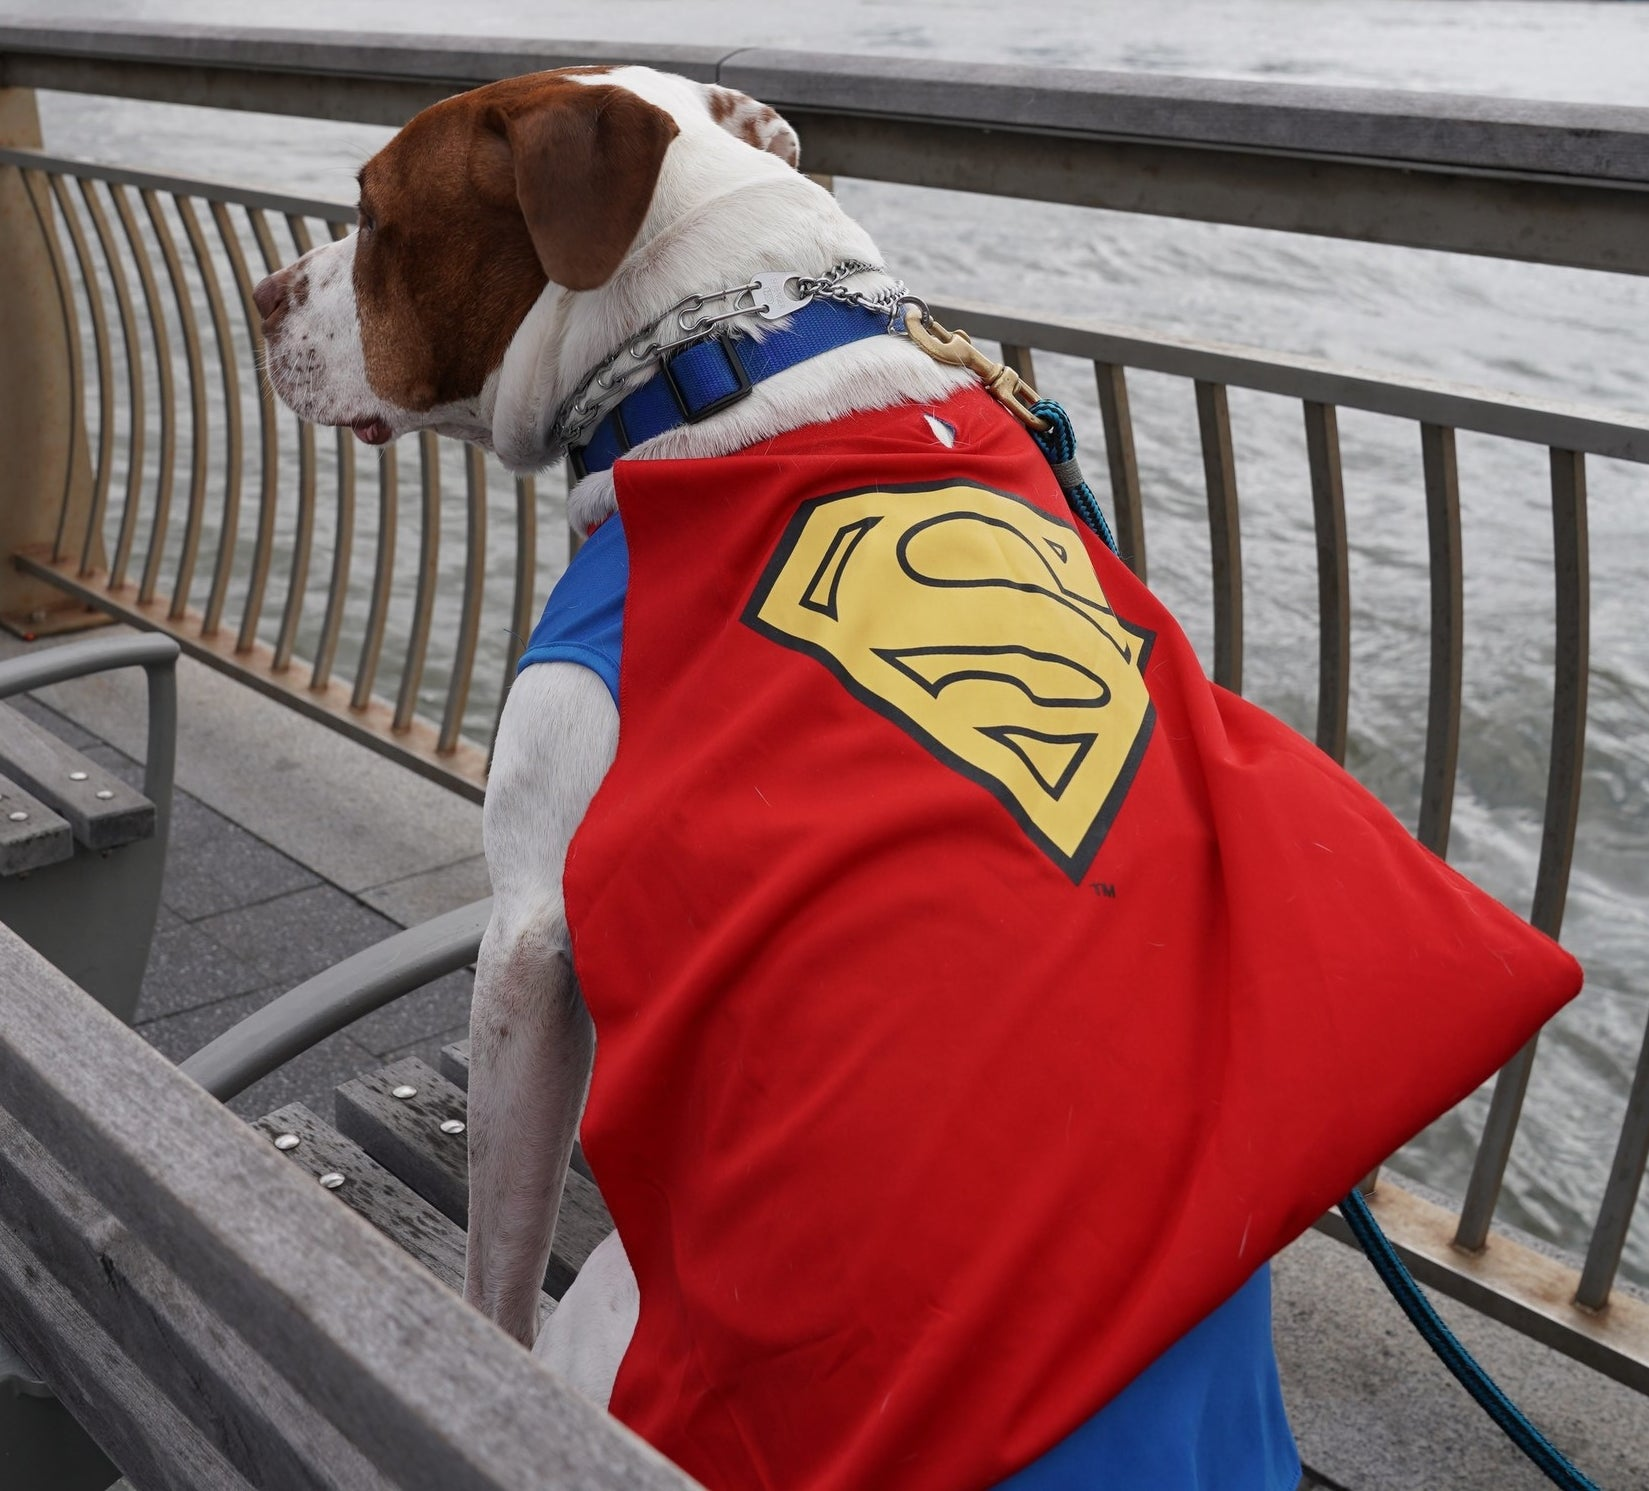 large dog wearing a sweater that resembles superman with a cape